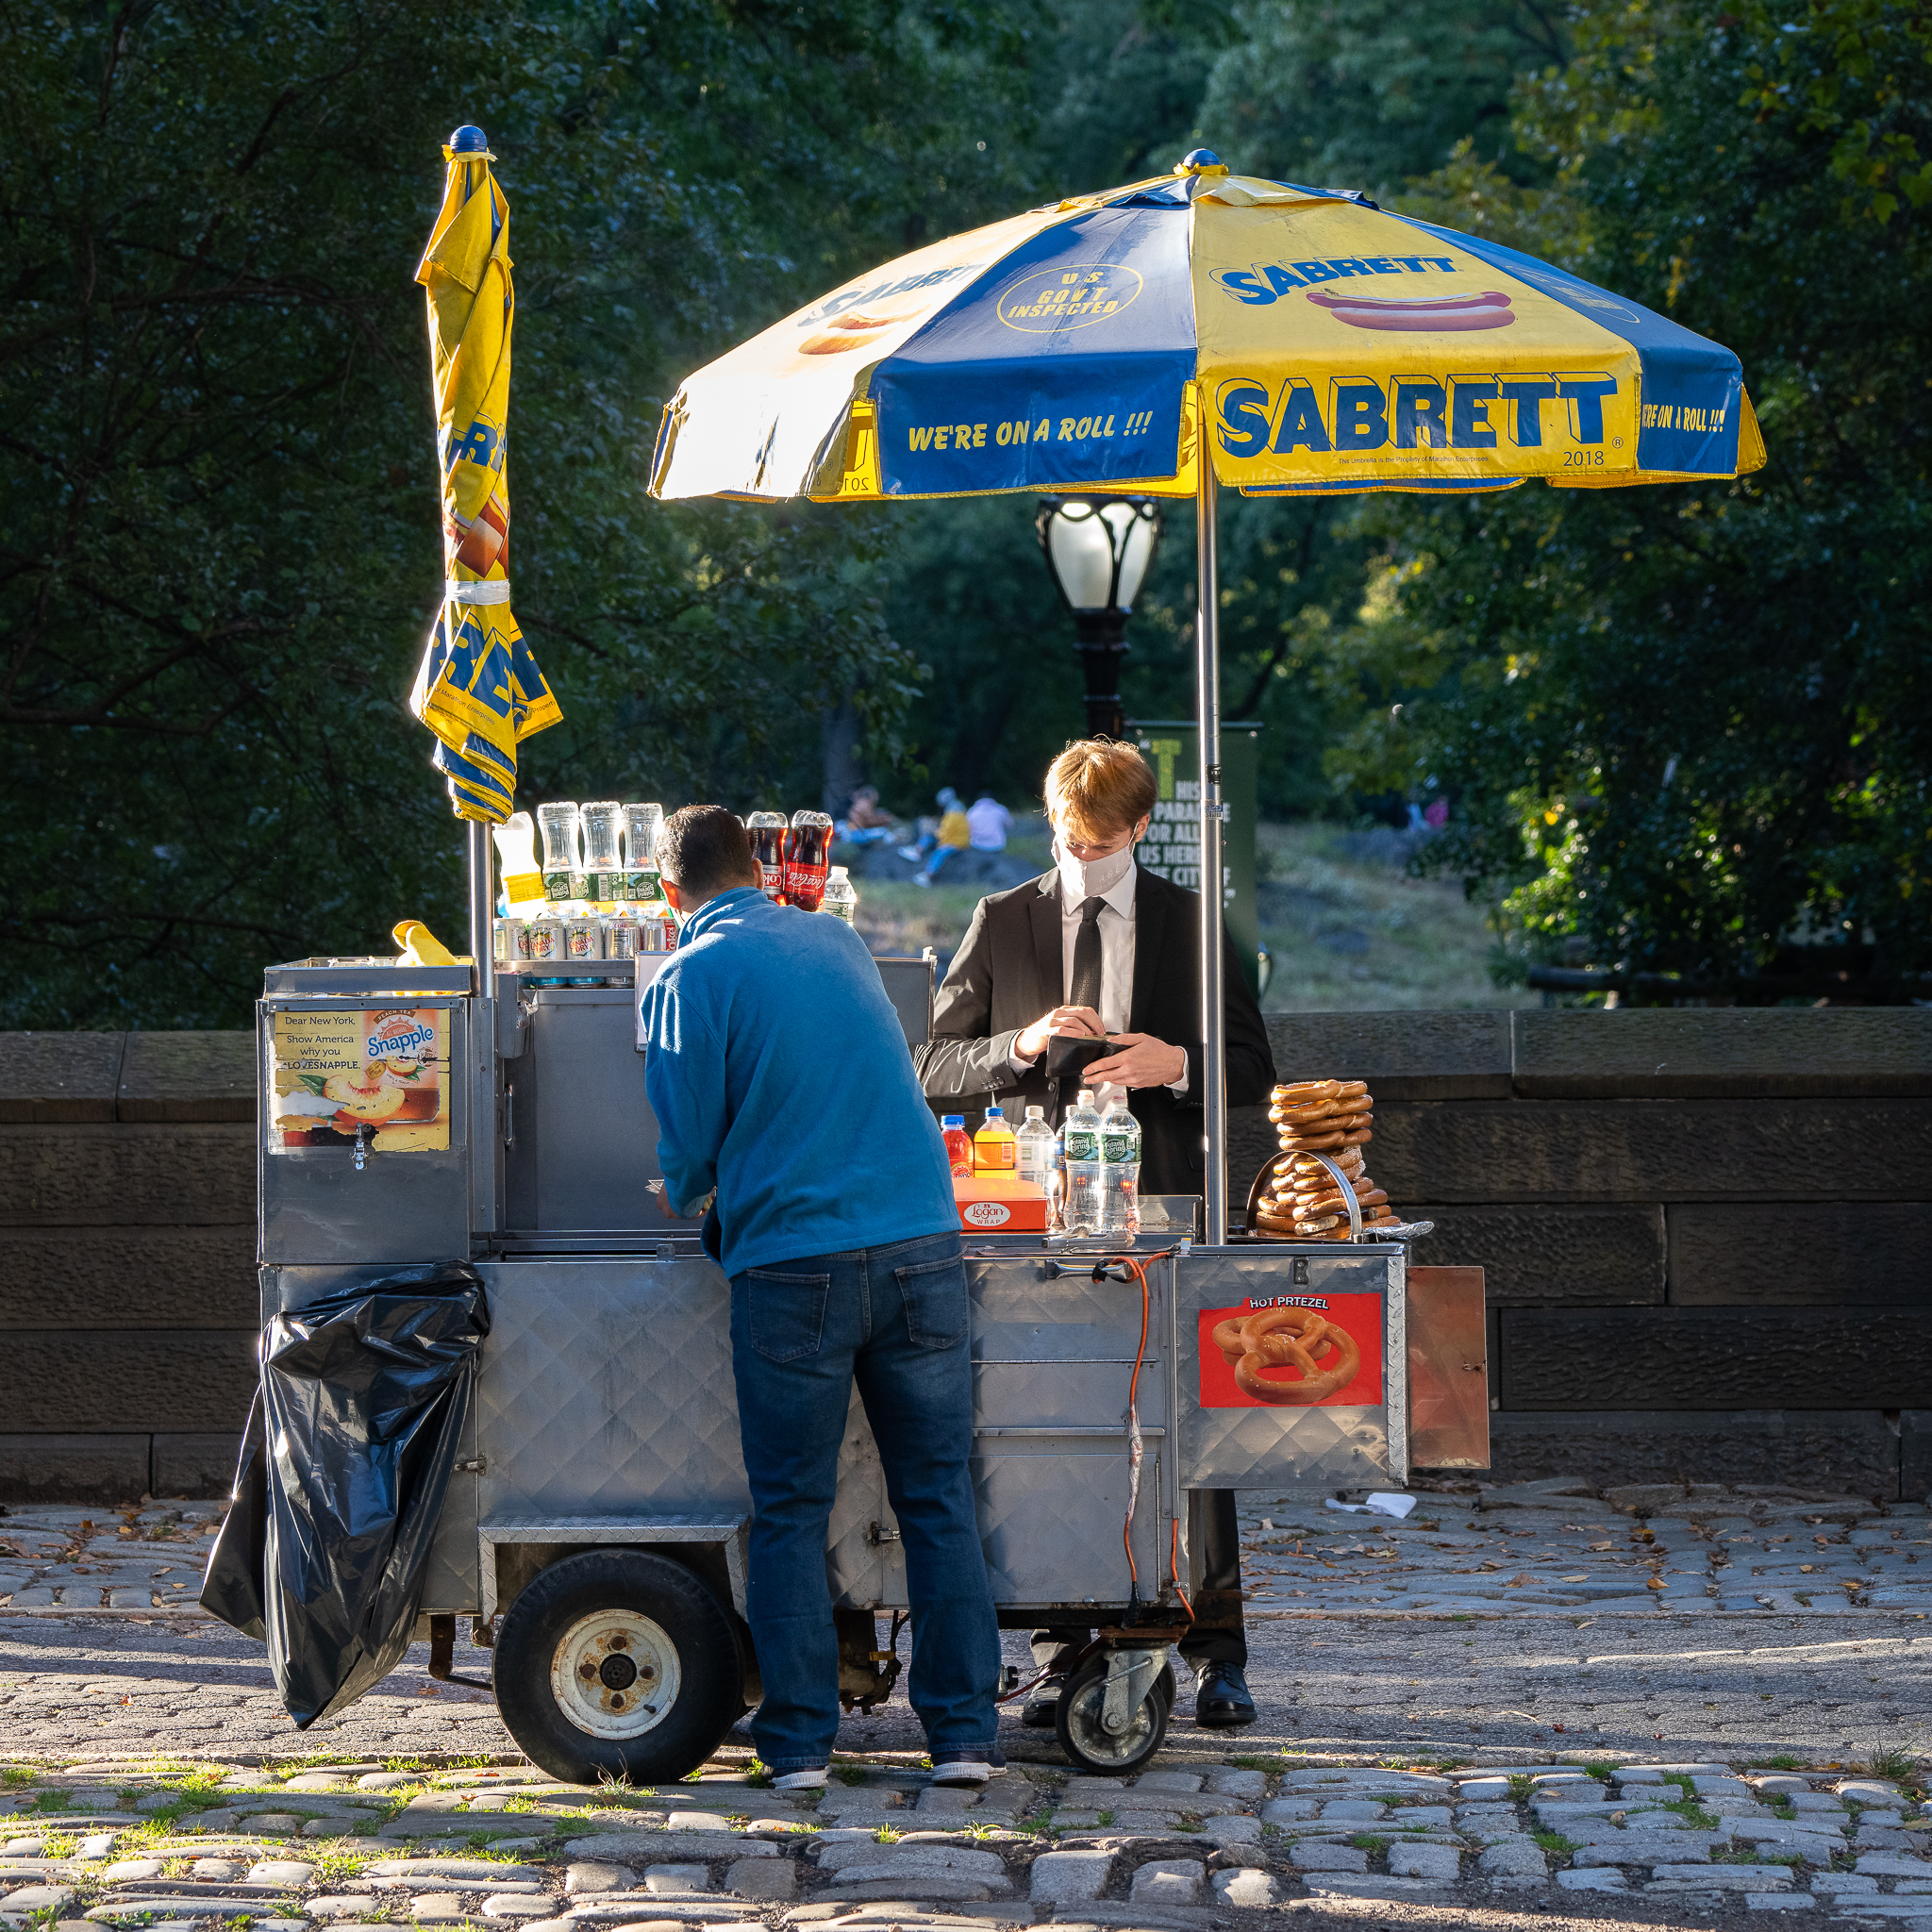 a photo of a man buying a pretzel at a stand near central park new york city